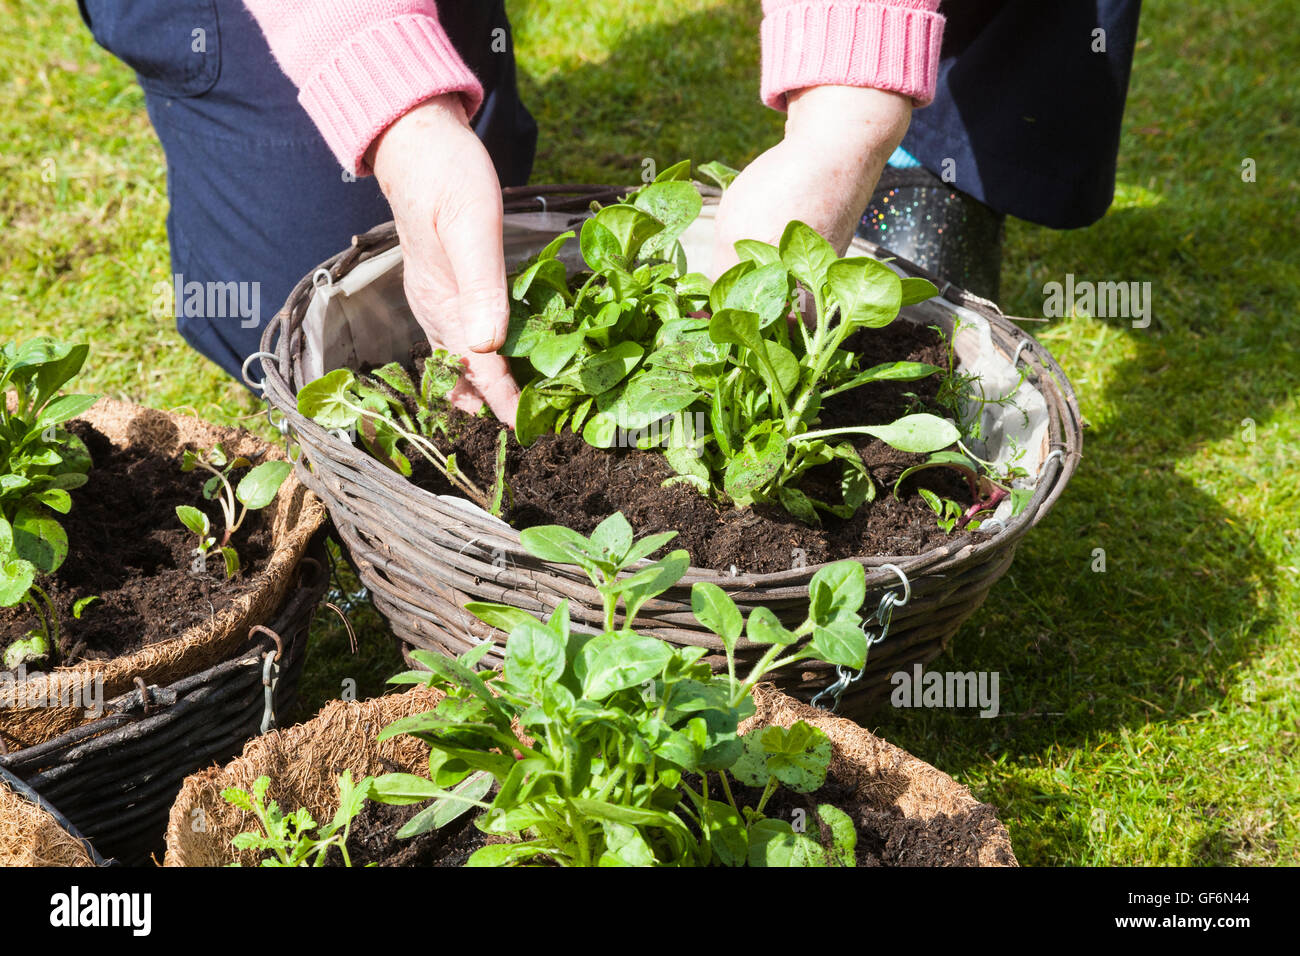 Elderly woman planting hanging baskets with colourful summer plants using plug plants - Stock Image